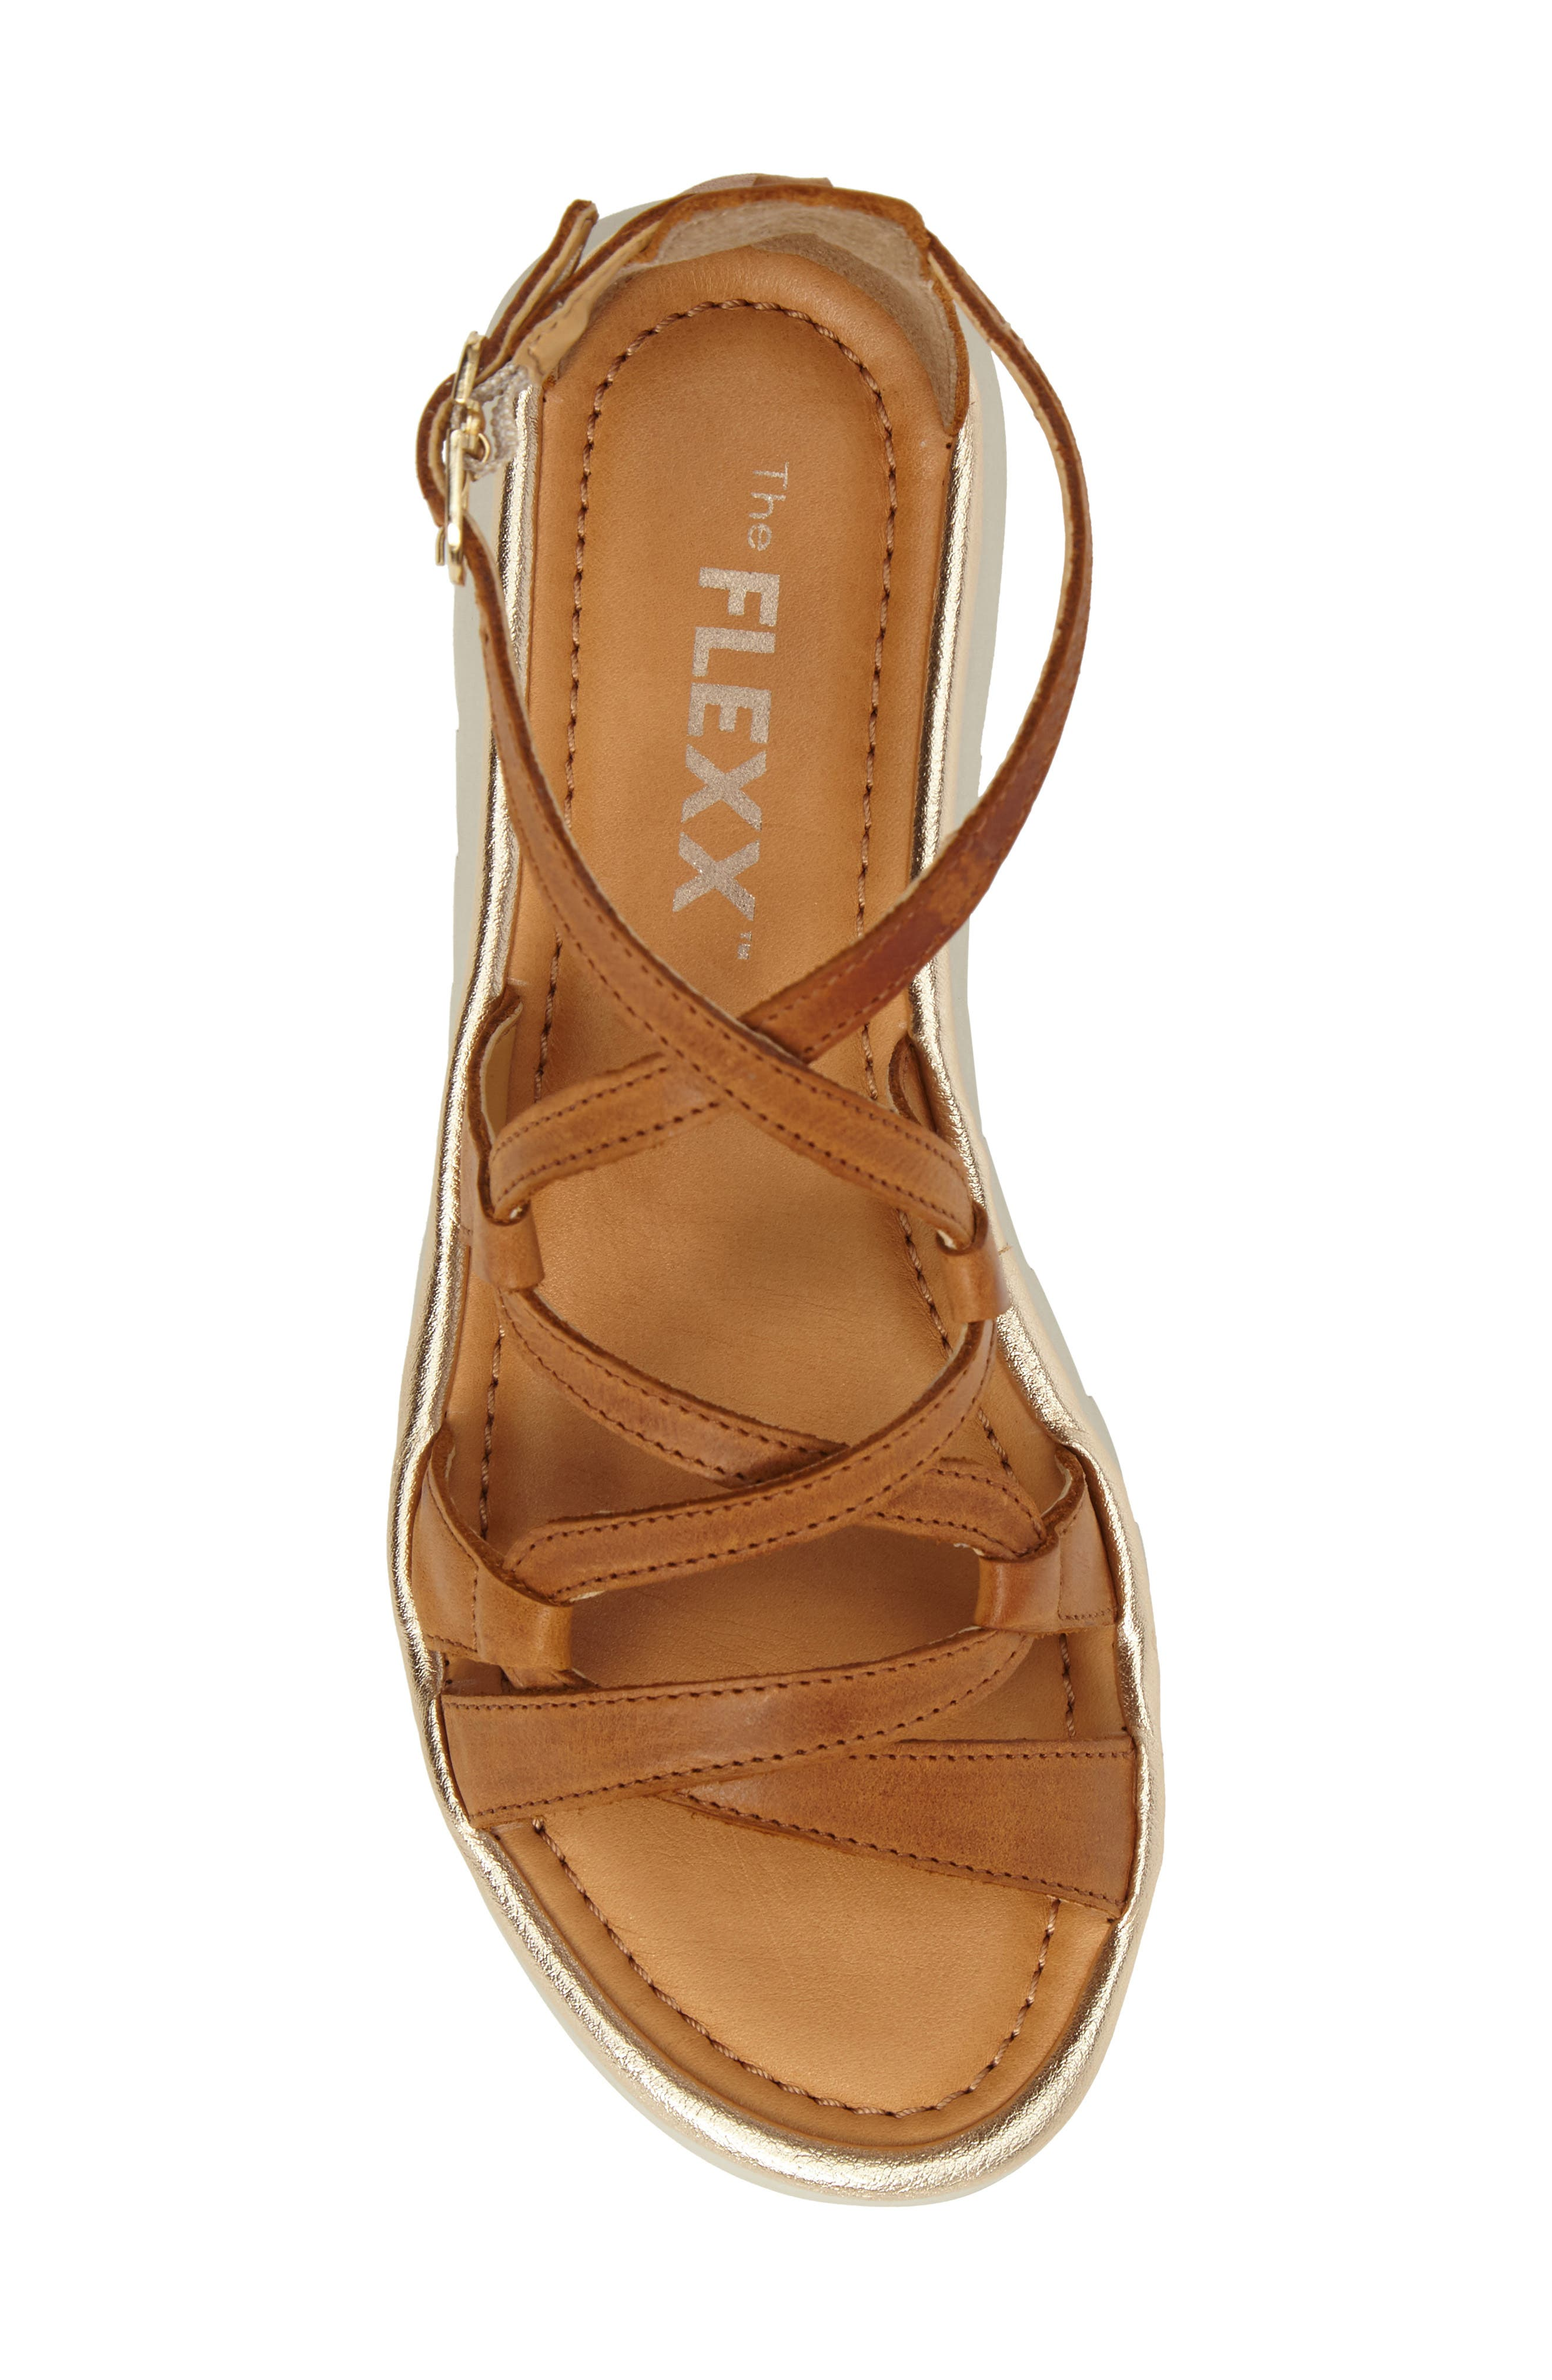 Catch a Wave Sandal,                             Alternate thumbnail 4, color,                             Cognac Leather